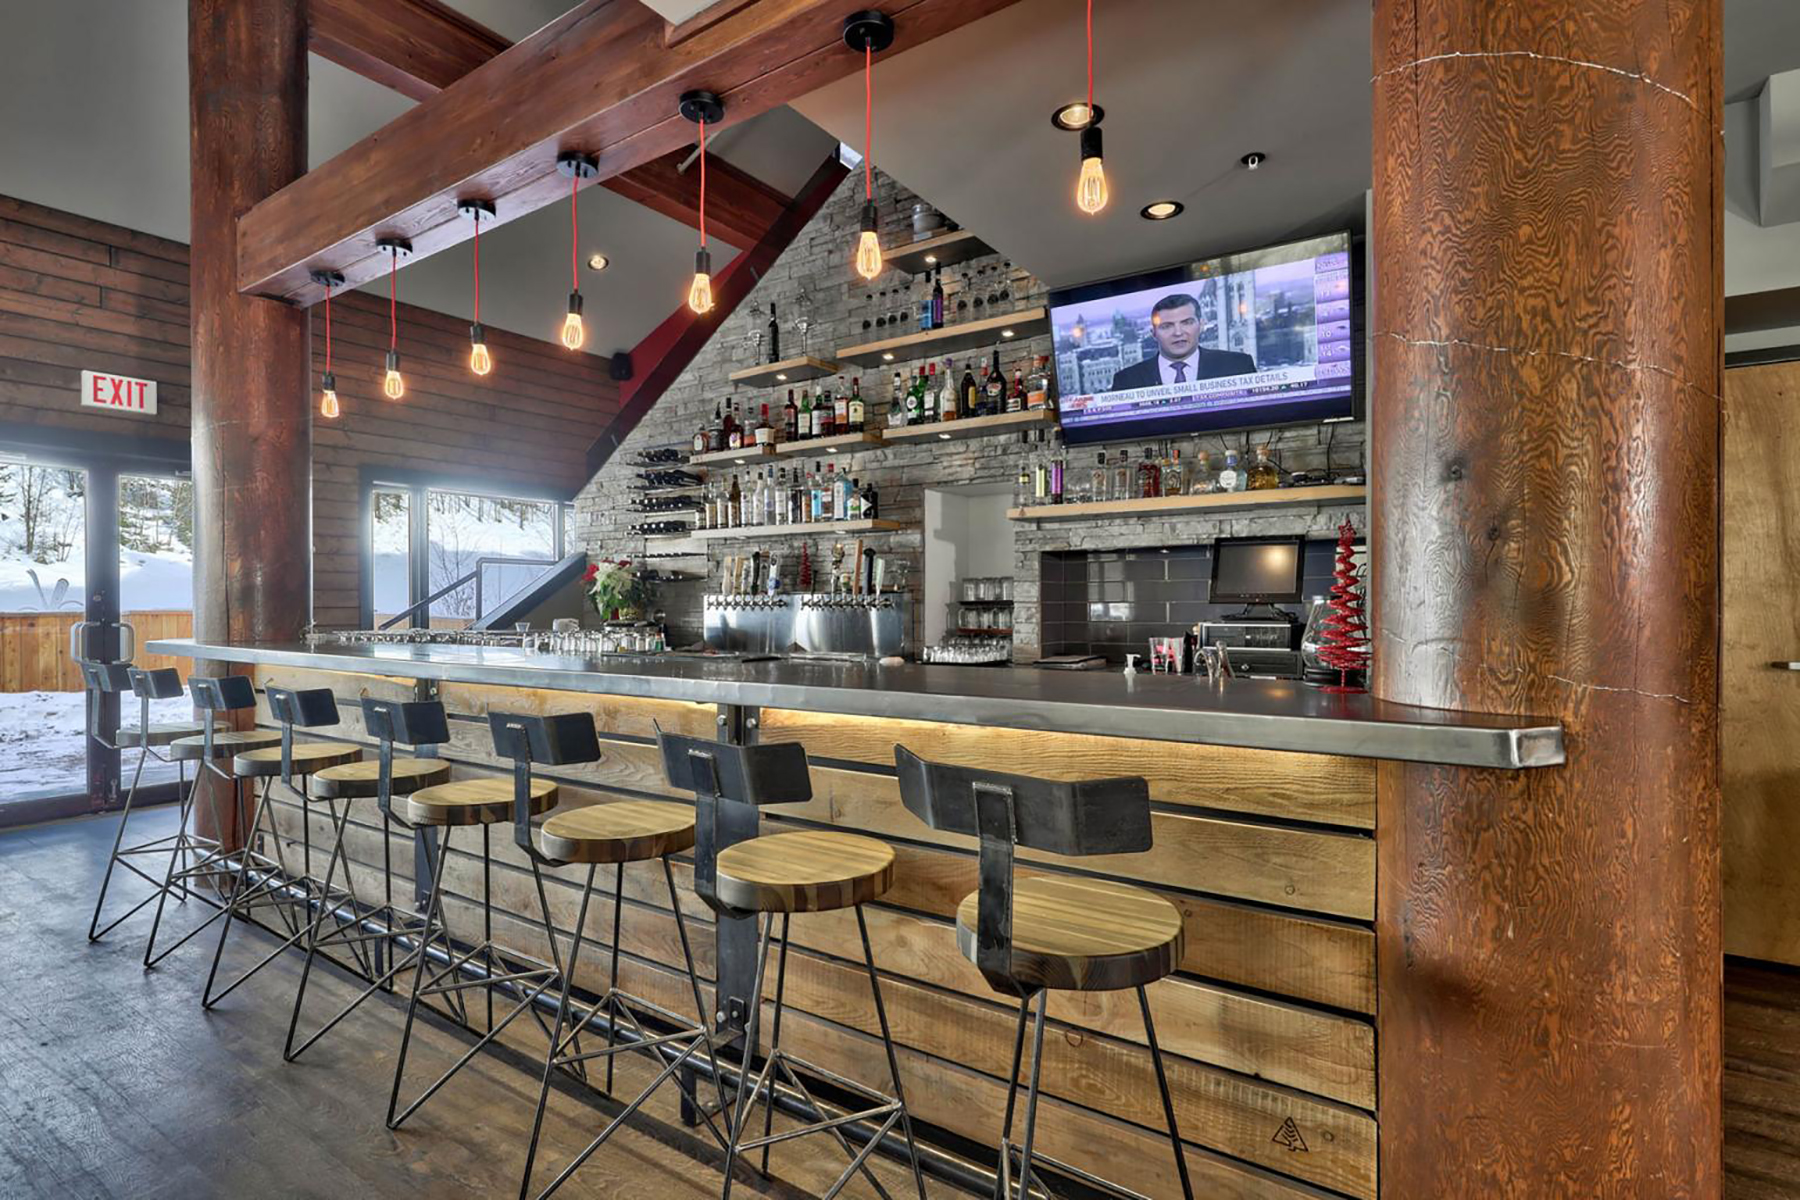 The bar at Cahilty Creek Kitchen and Taproom